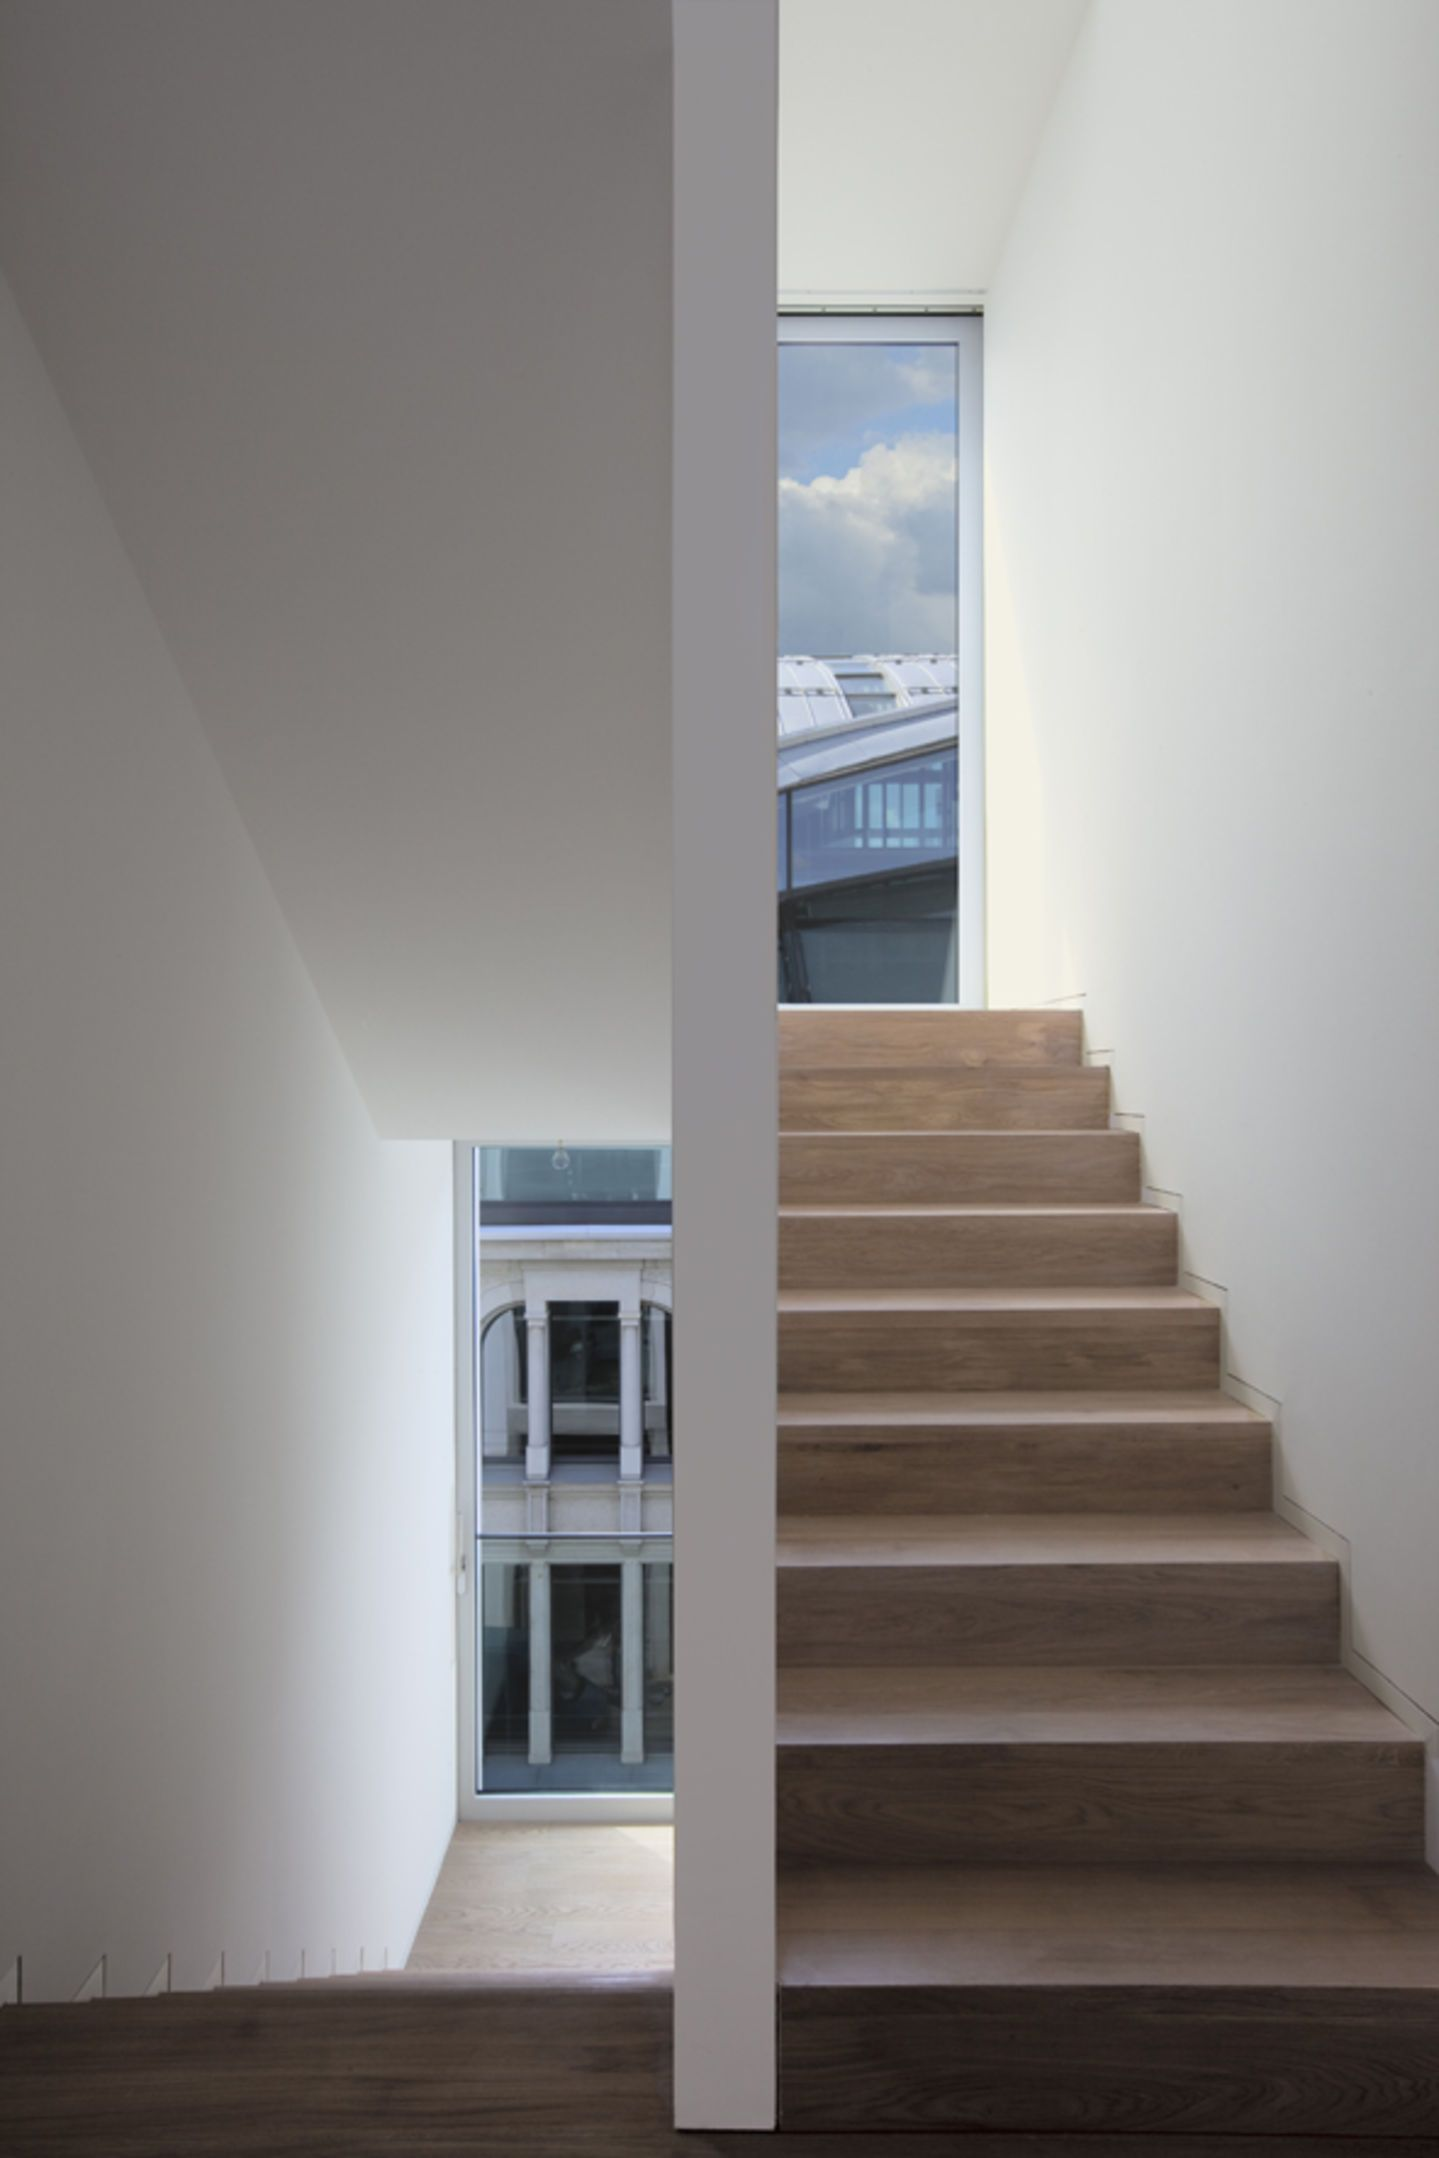 David chipperfield architects townhouse o 10 divisare for Interior architecture berlin